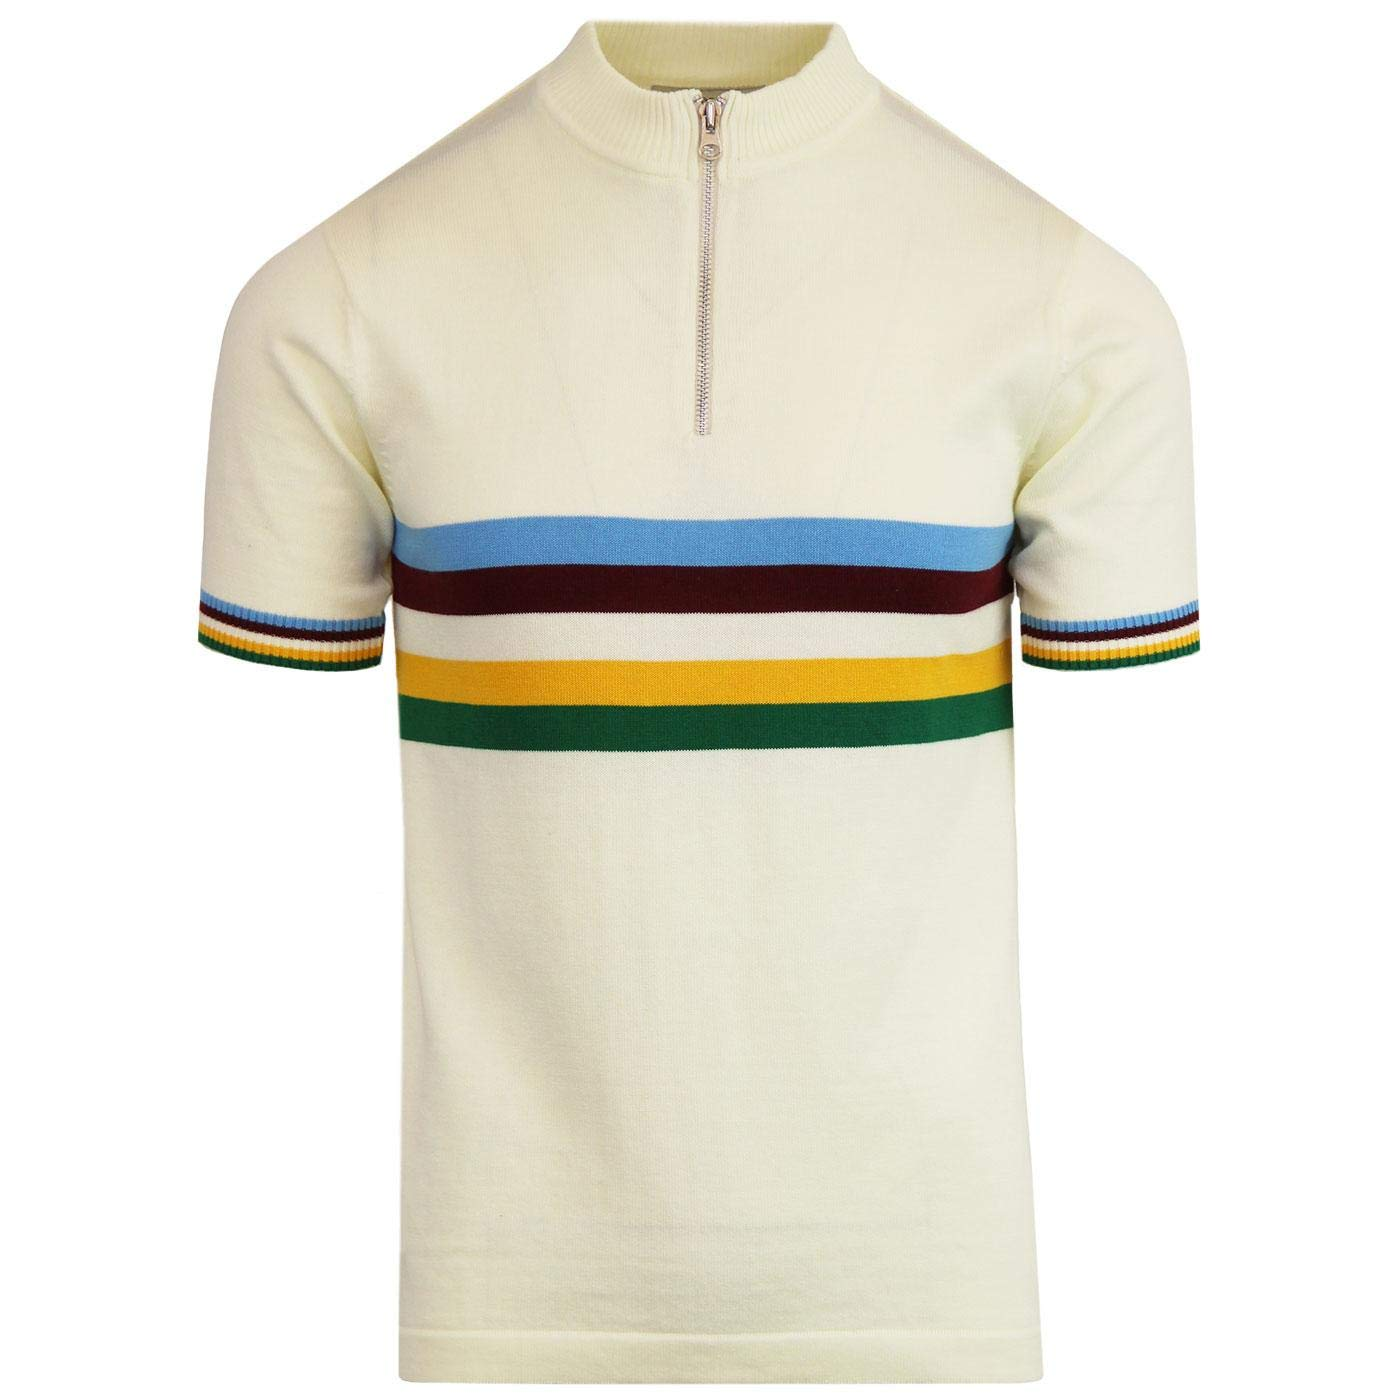 1960s – 70s Mens Shirts- Disco Shirts, Hippie Shirts Madcap England Mens Velo Cycling Top in Winter White £34.99 AT vintagedancer.com